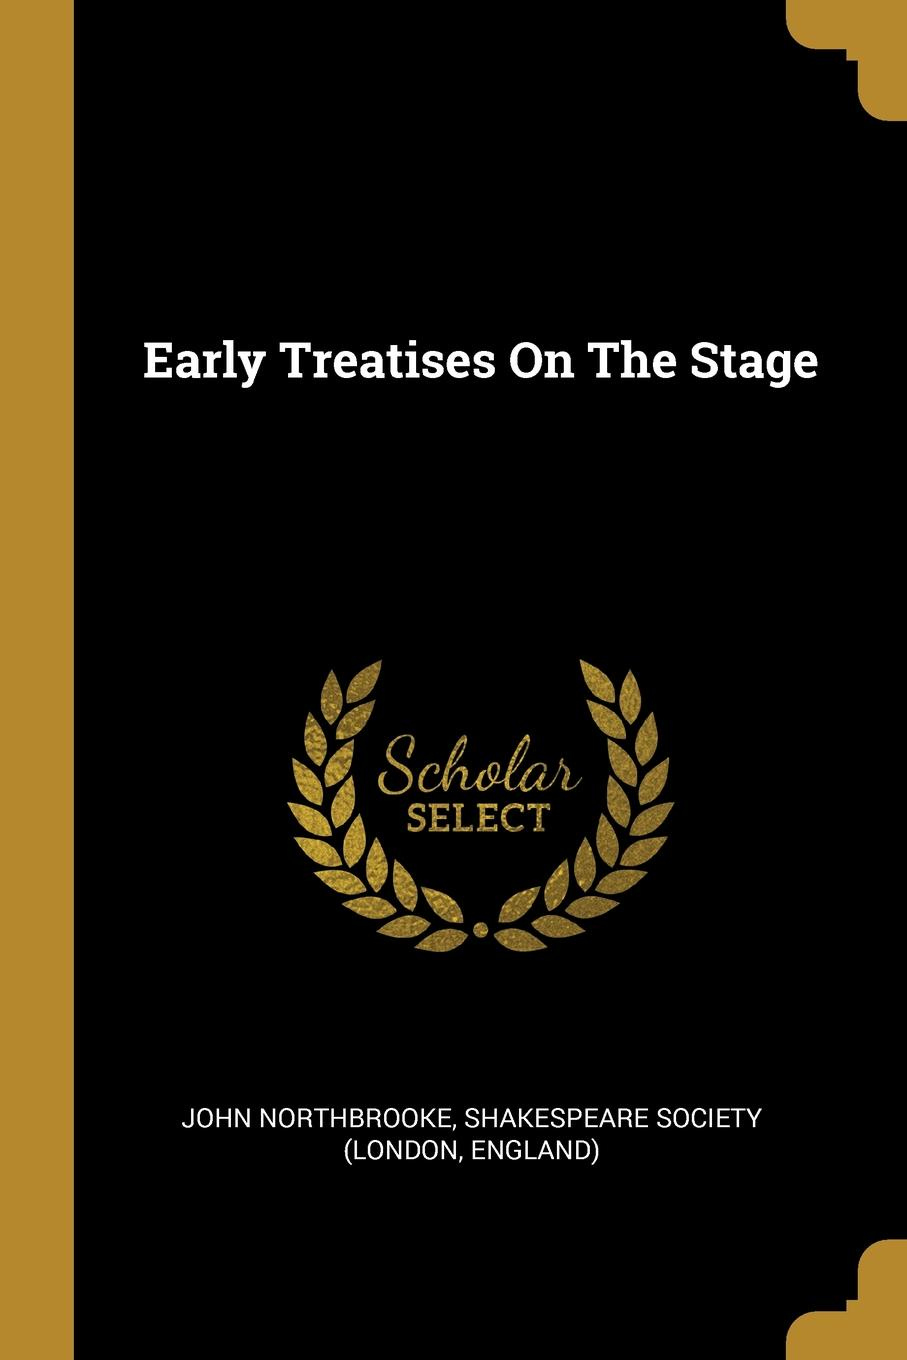 Shakespeare Society (London Northbrooke. Early Treatises On The Stage